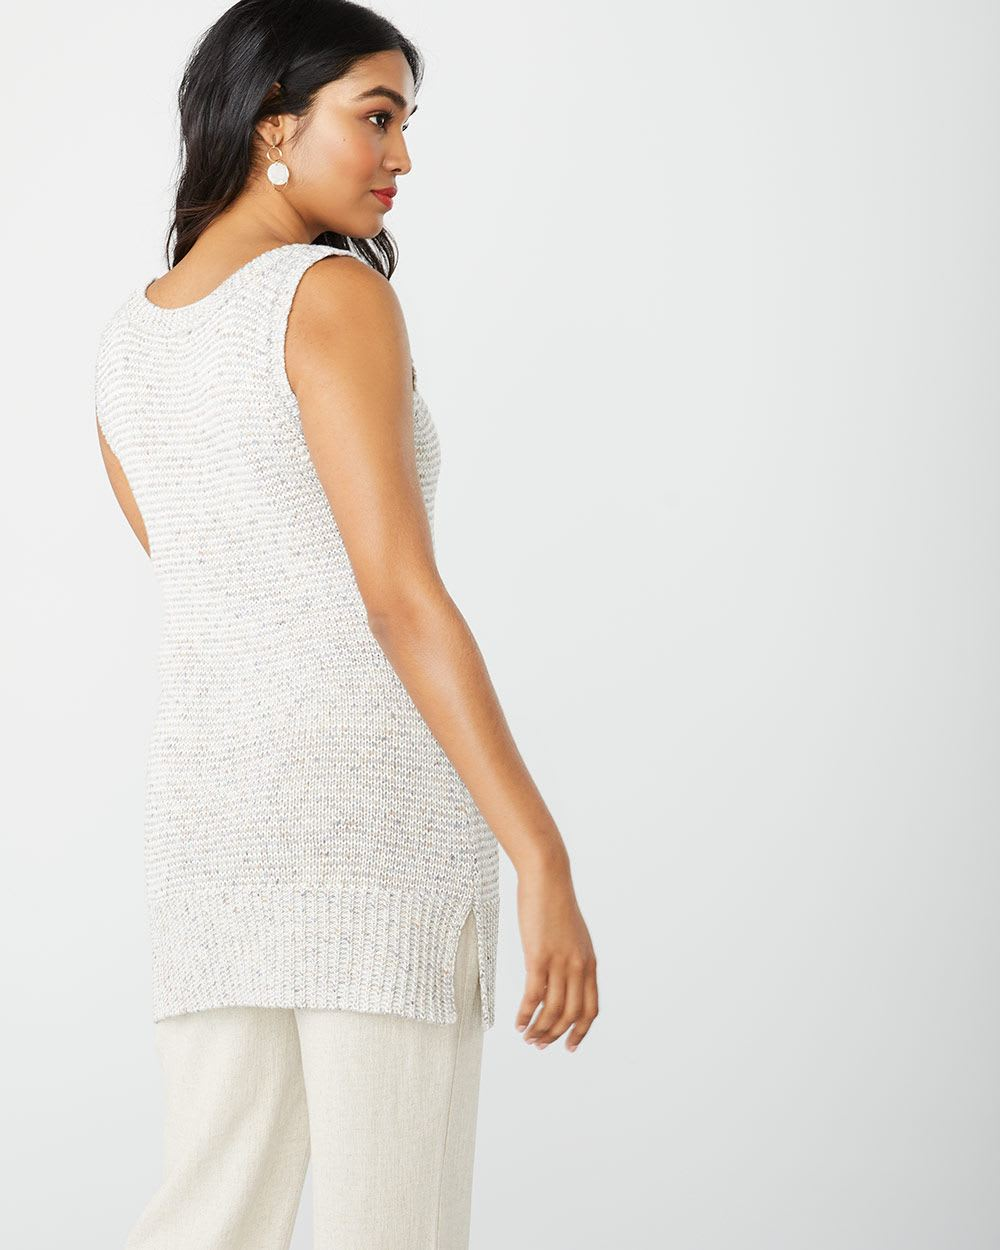 Sleeveless Speckled tunic sweater